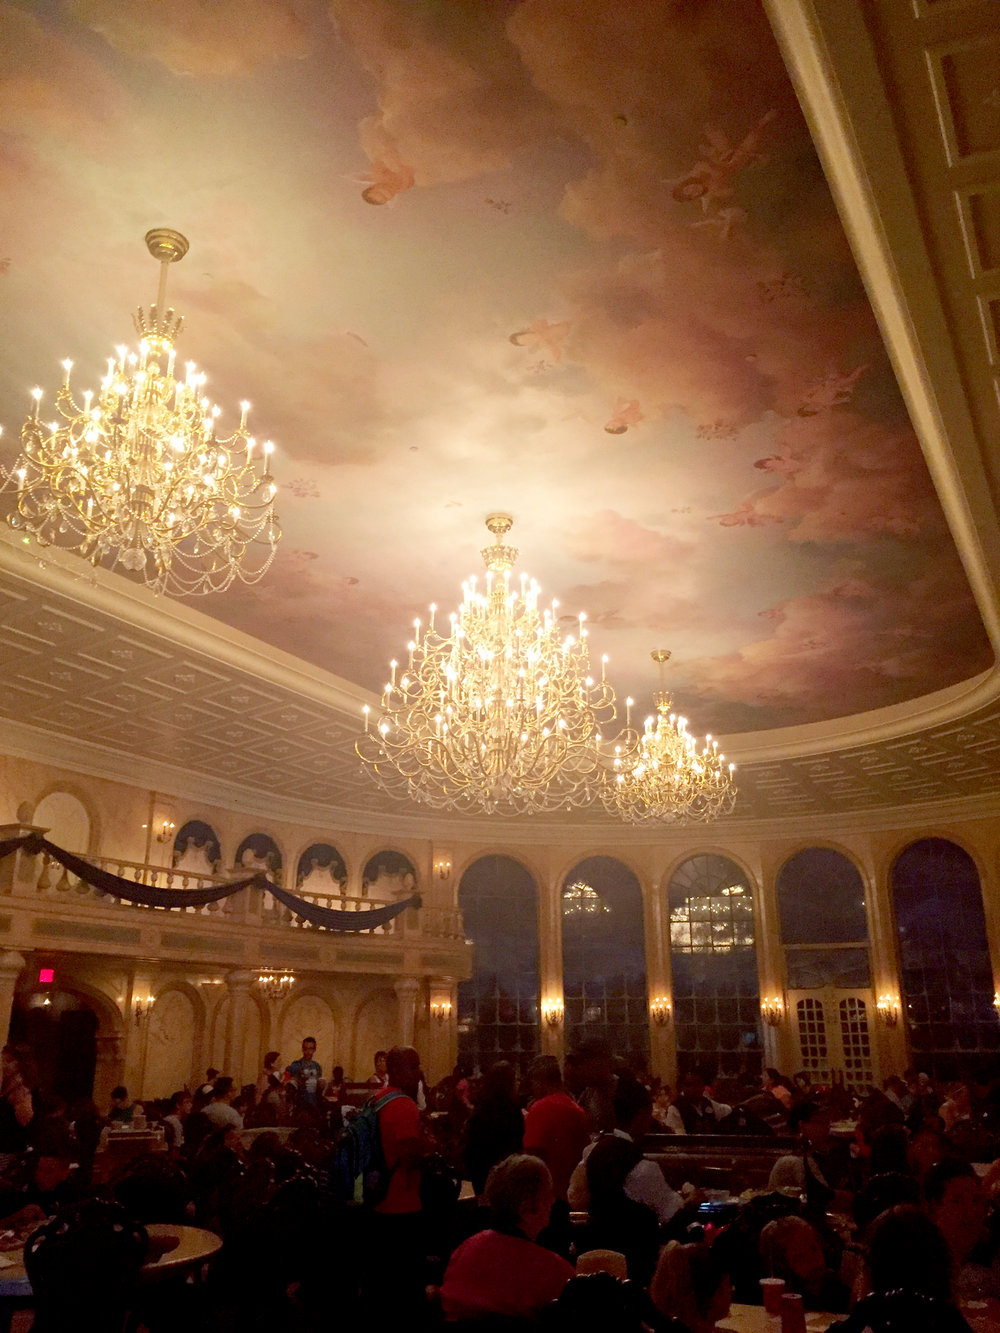 Walking into the ballroom at the Be Our Guest restaurant felt like walking into the movie! It's breathtaking!